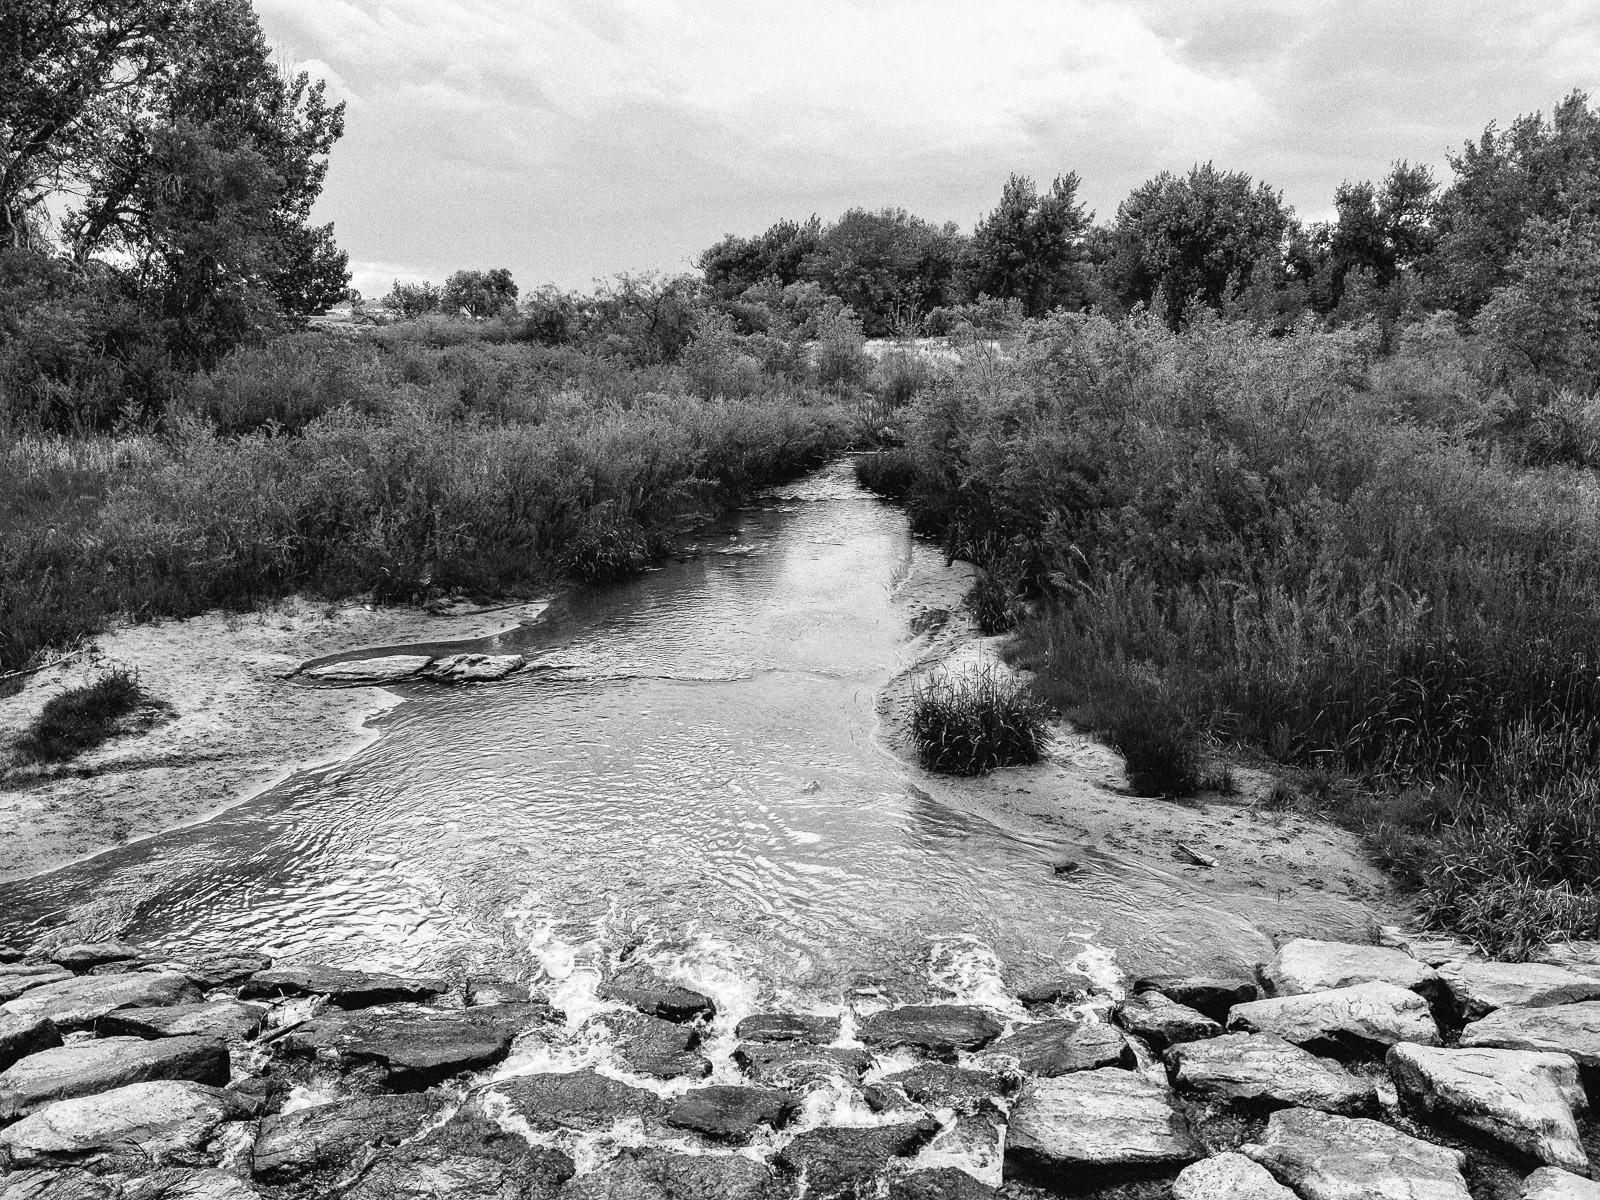 Day 160- 365 Day B&W Photo Challenge - The spring rain and heavy snowfall this winter have filled the creeks with spring runoff. - Google Pixel 3, VSCO Kodak Tri-X400 Film Simulation